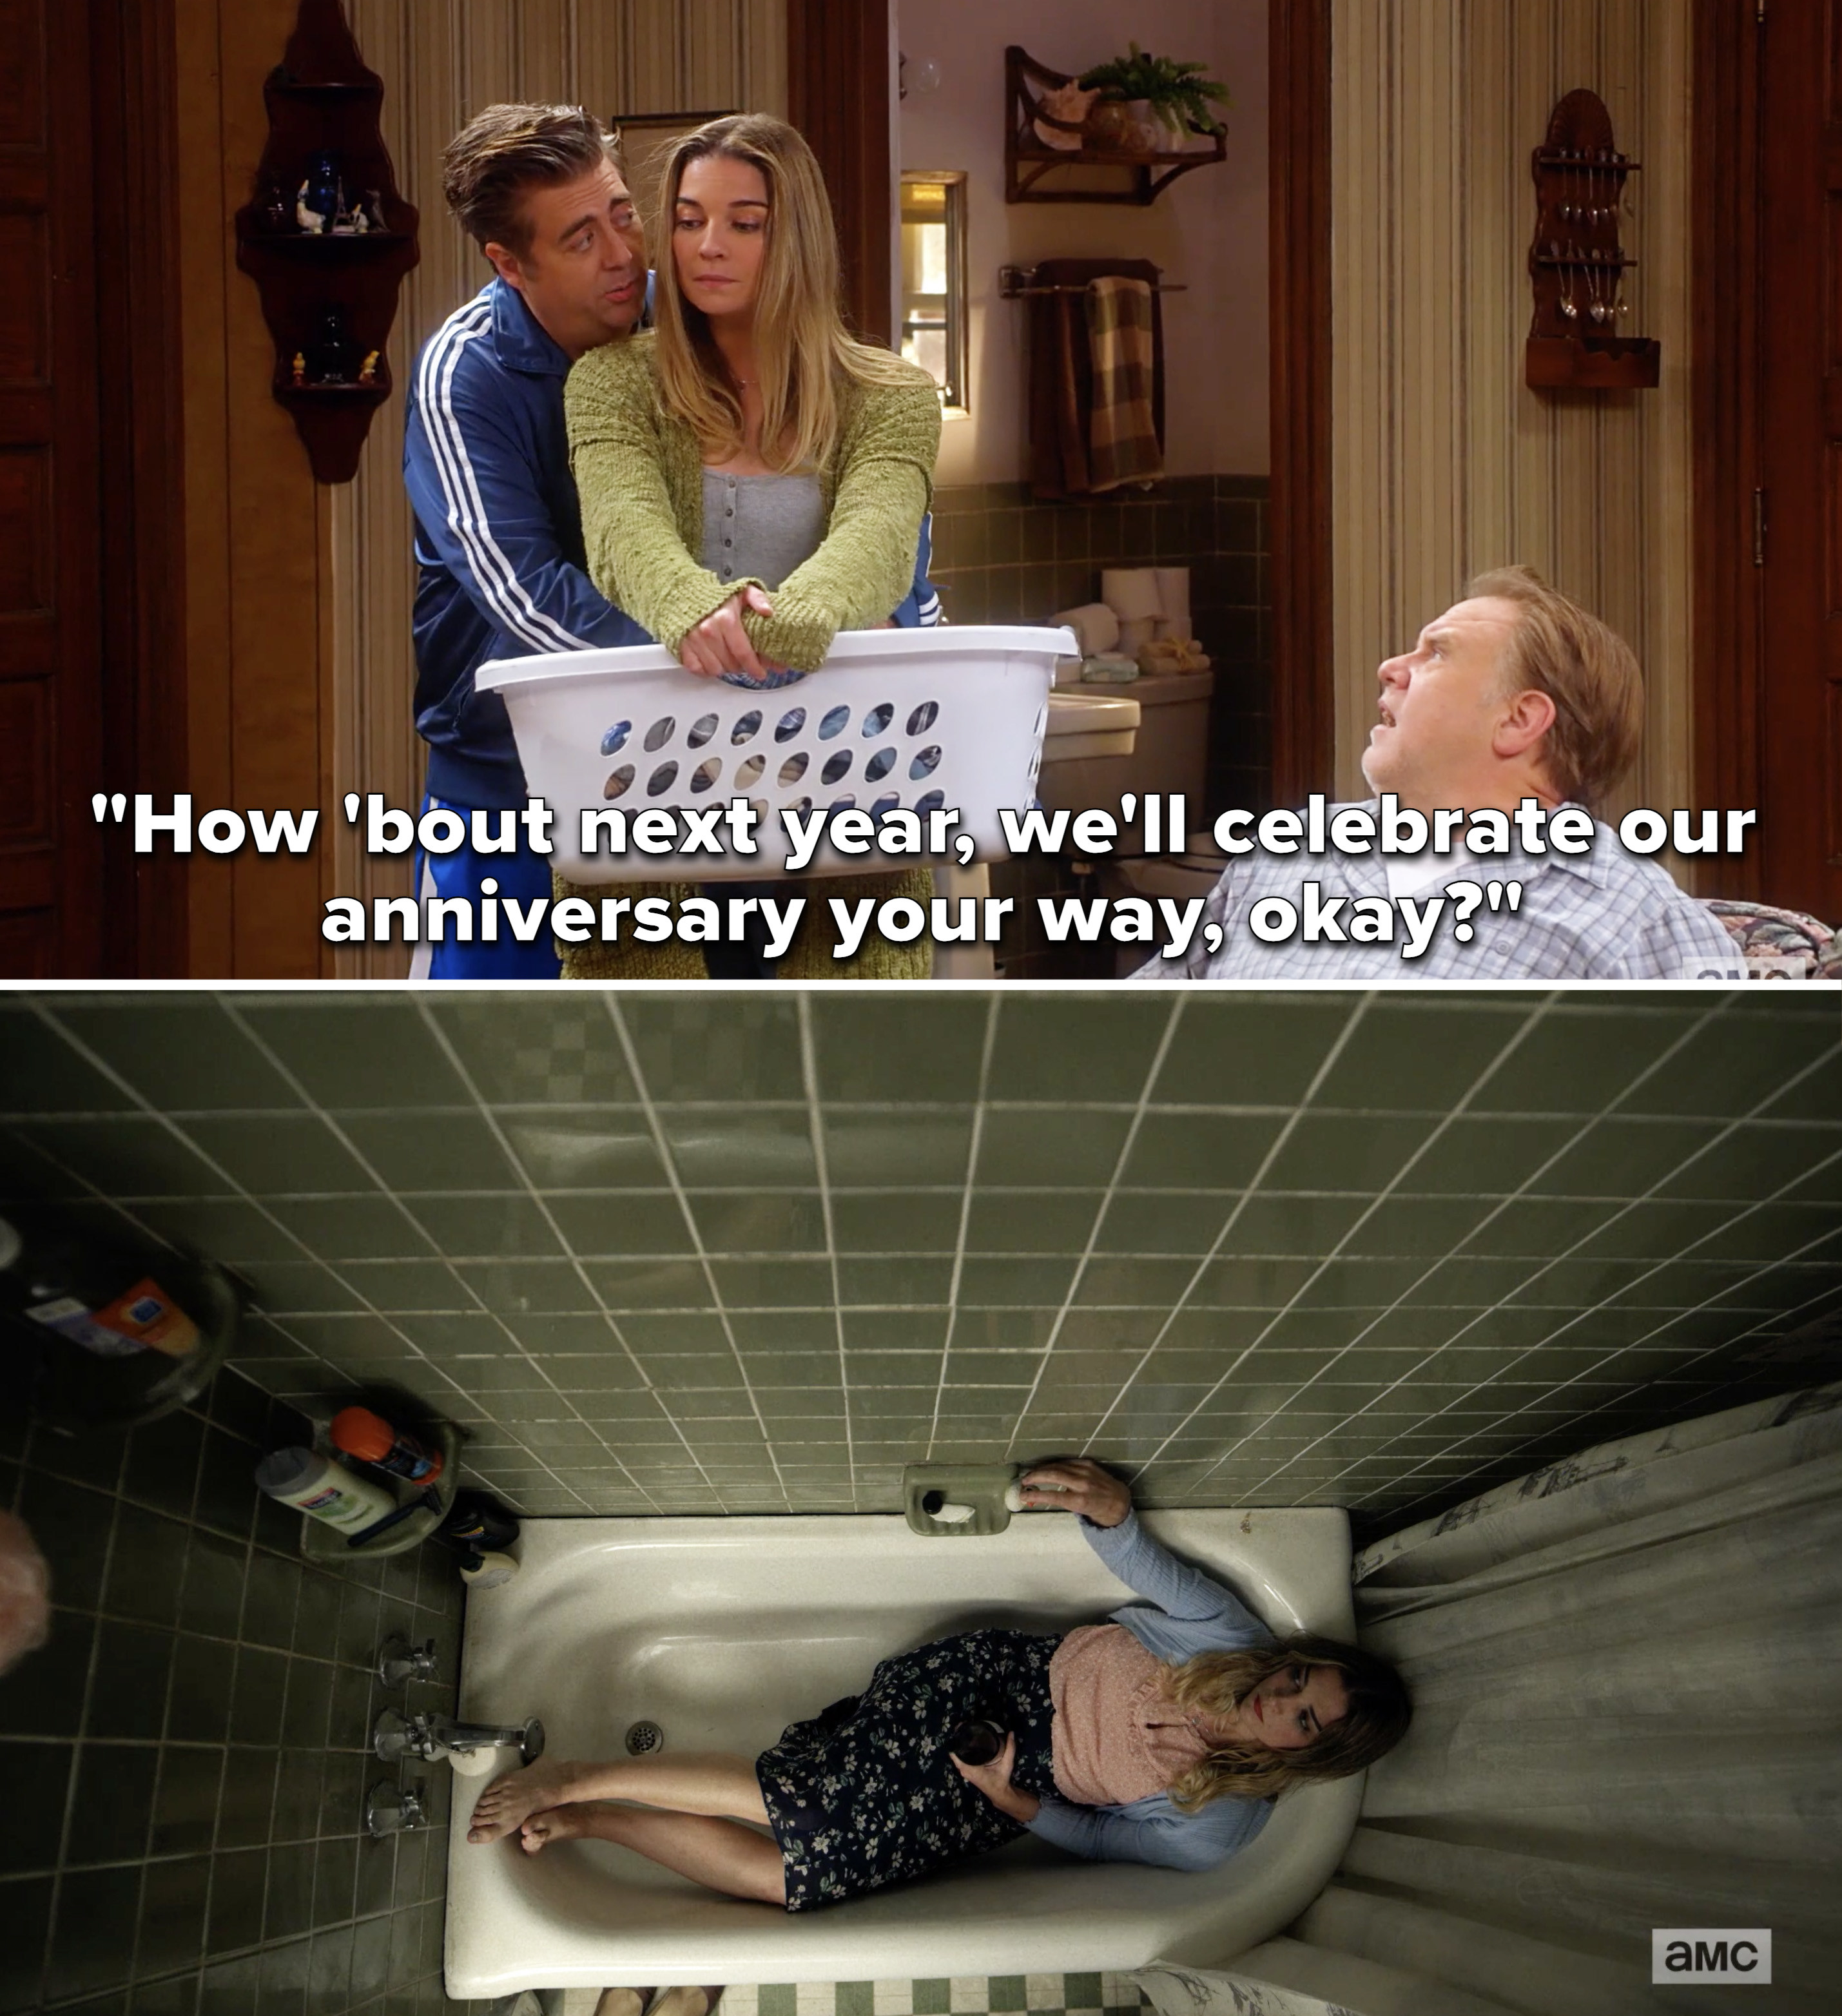 """Kevin telling Allison, """"How 'bout next year, we'll celebrate our anniversary your way, okay?"""" and a still of Allison sitting fully clothed in the bathtub"""